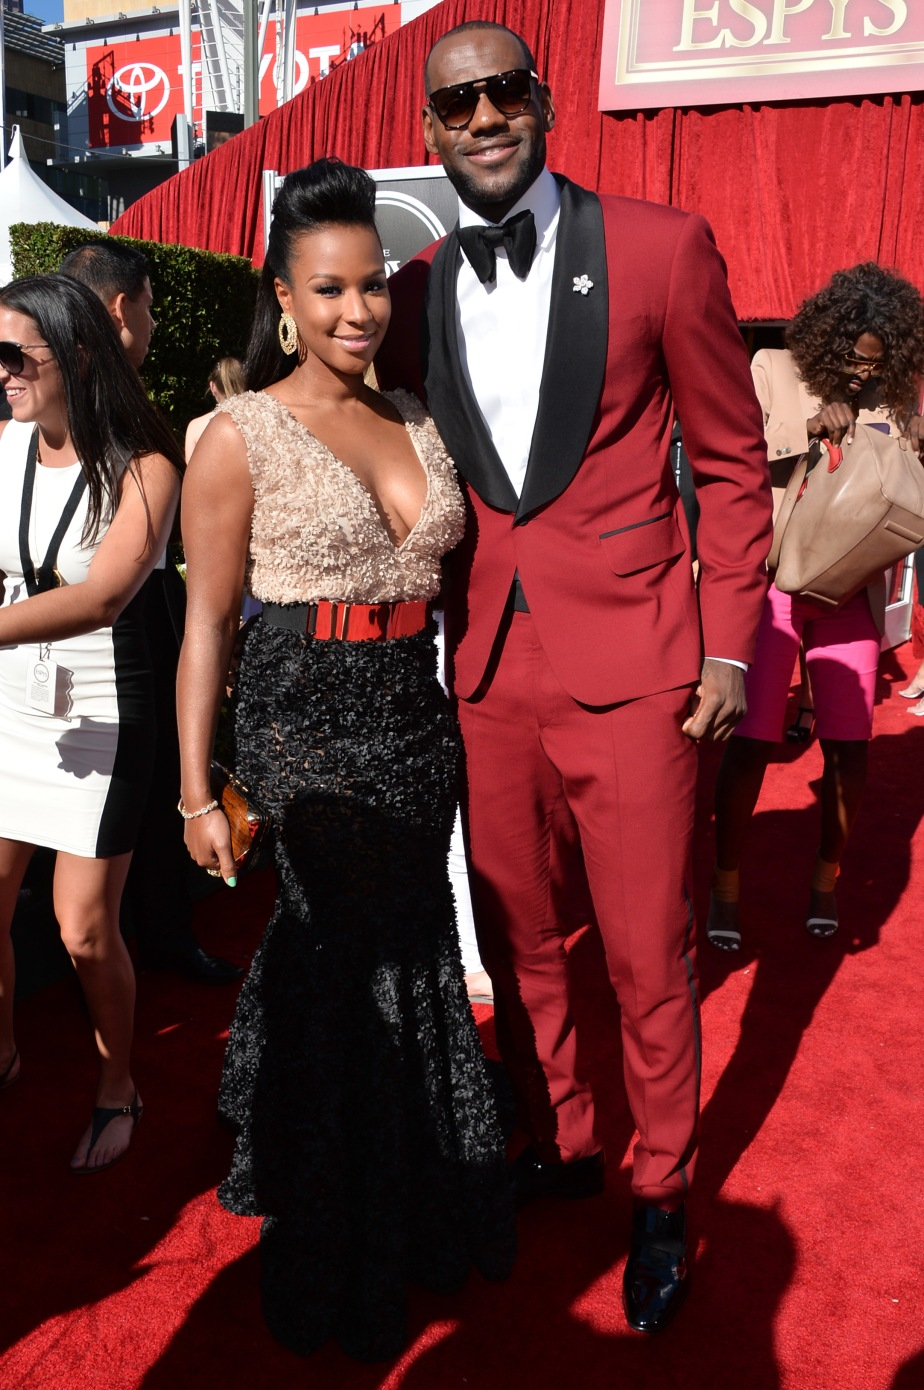 Not Enough has been said… LeBron James Red Tux (Waraire Boswell)